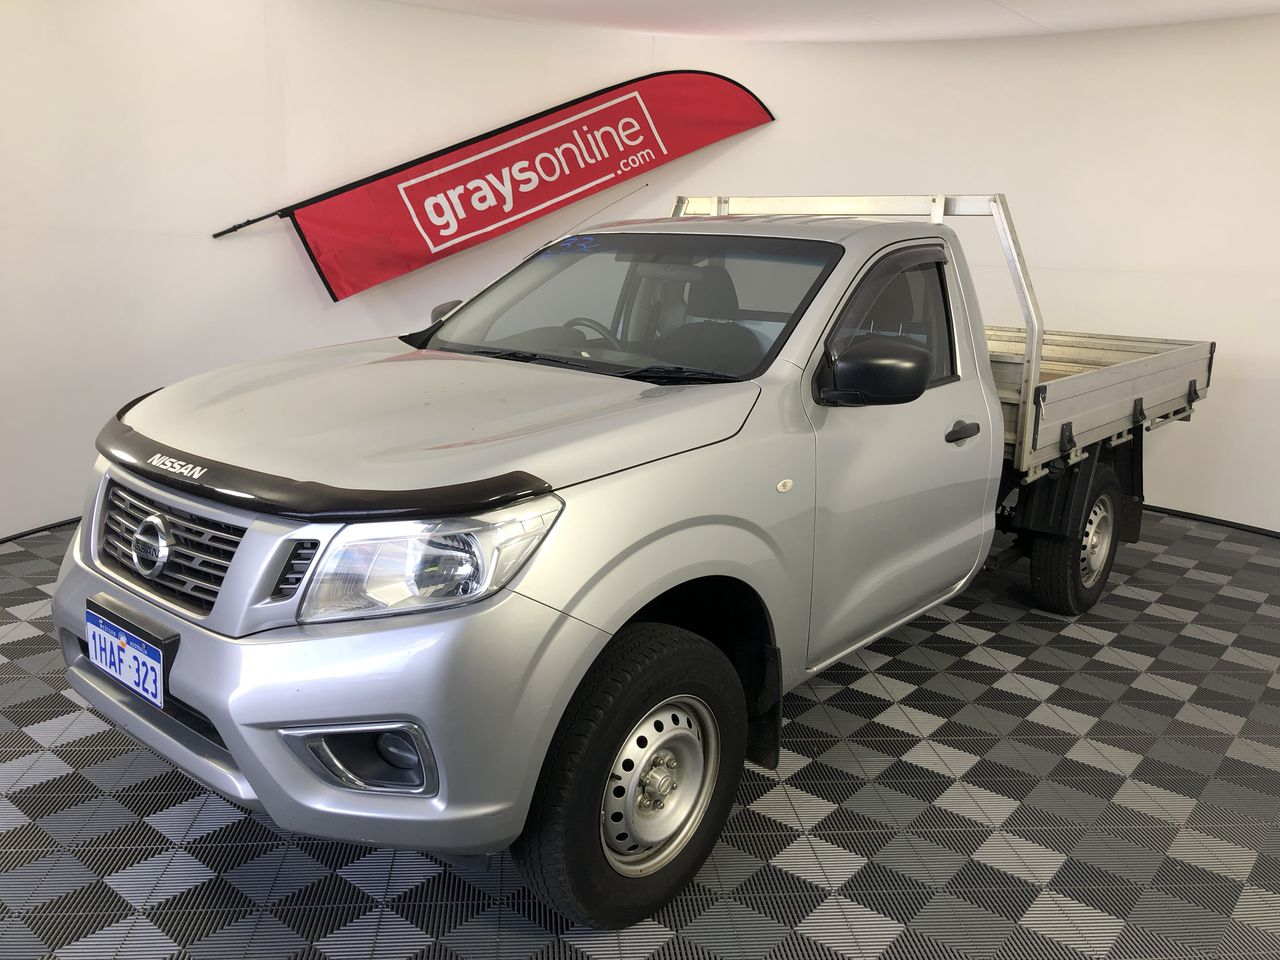 2016 Nissan Navara 4X2 DX NP300 Manual Cab Chassis(WOVR-Inspected)